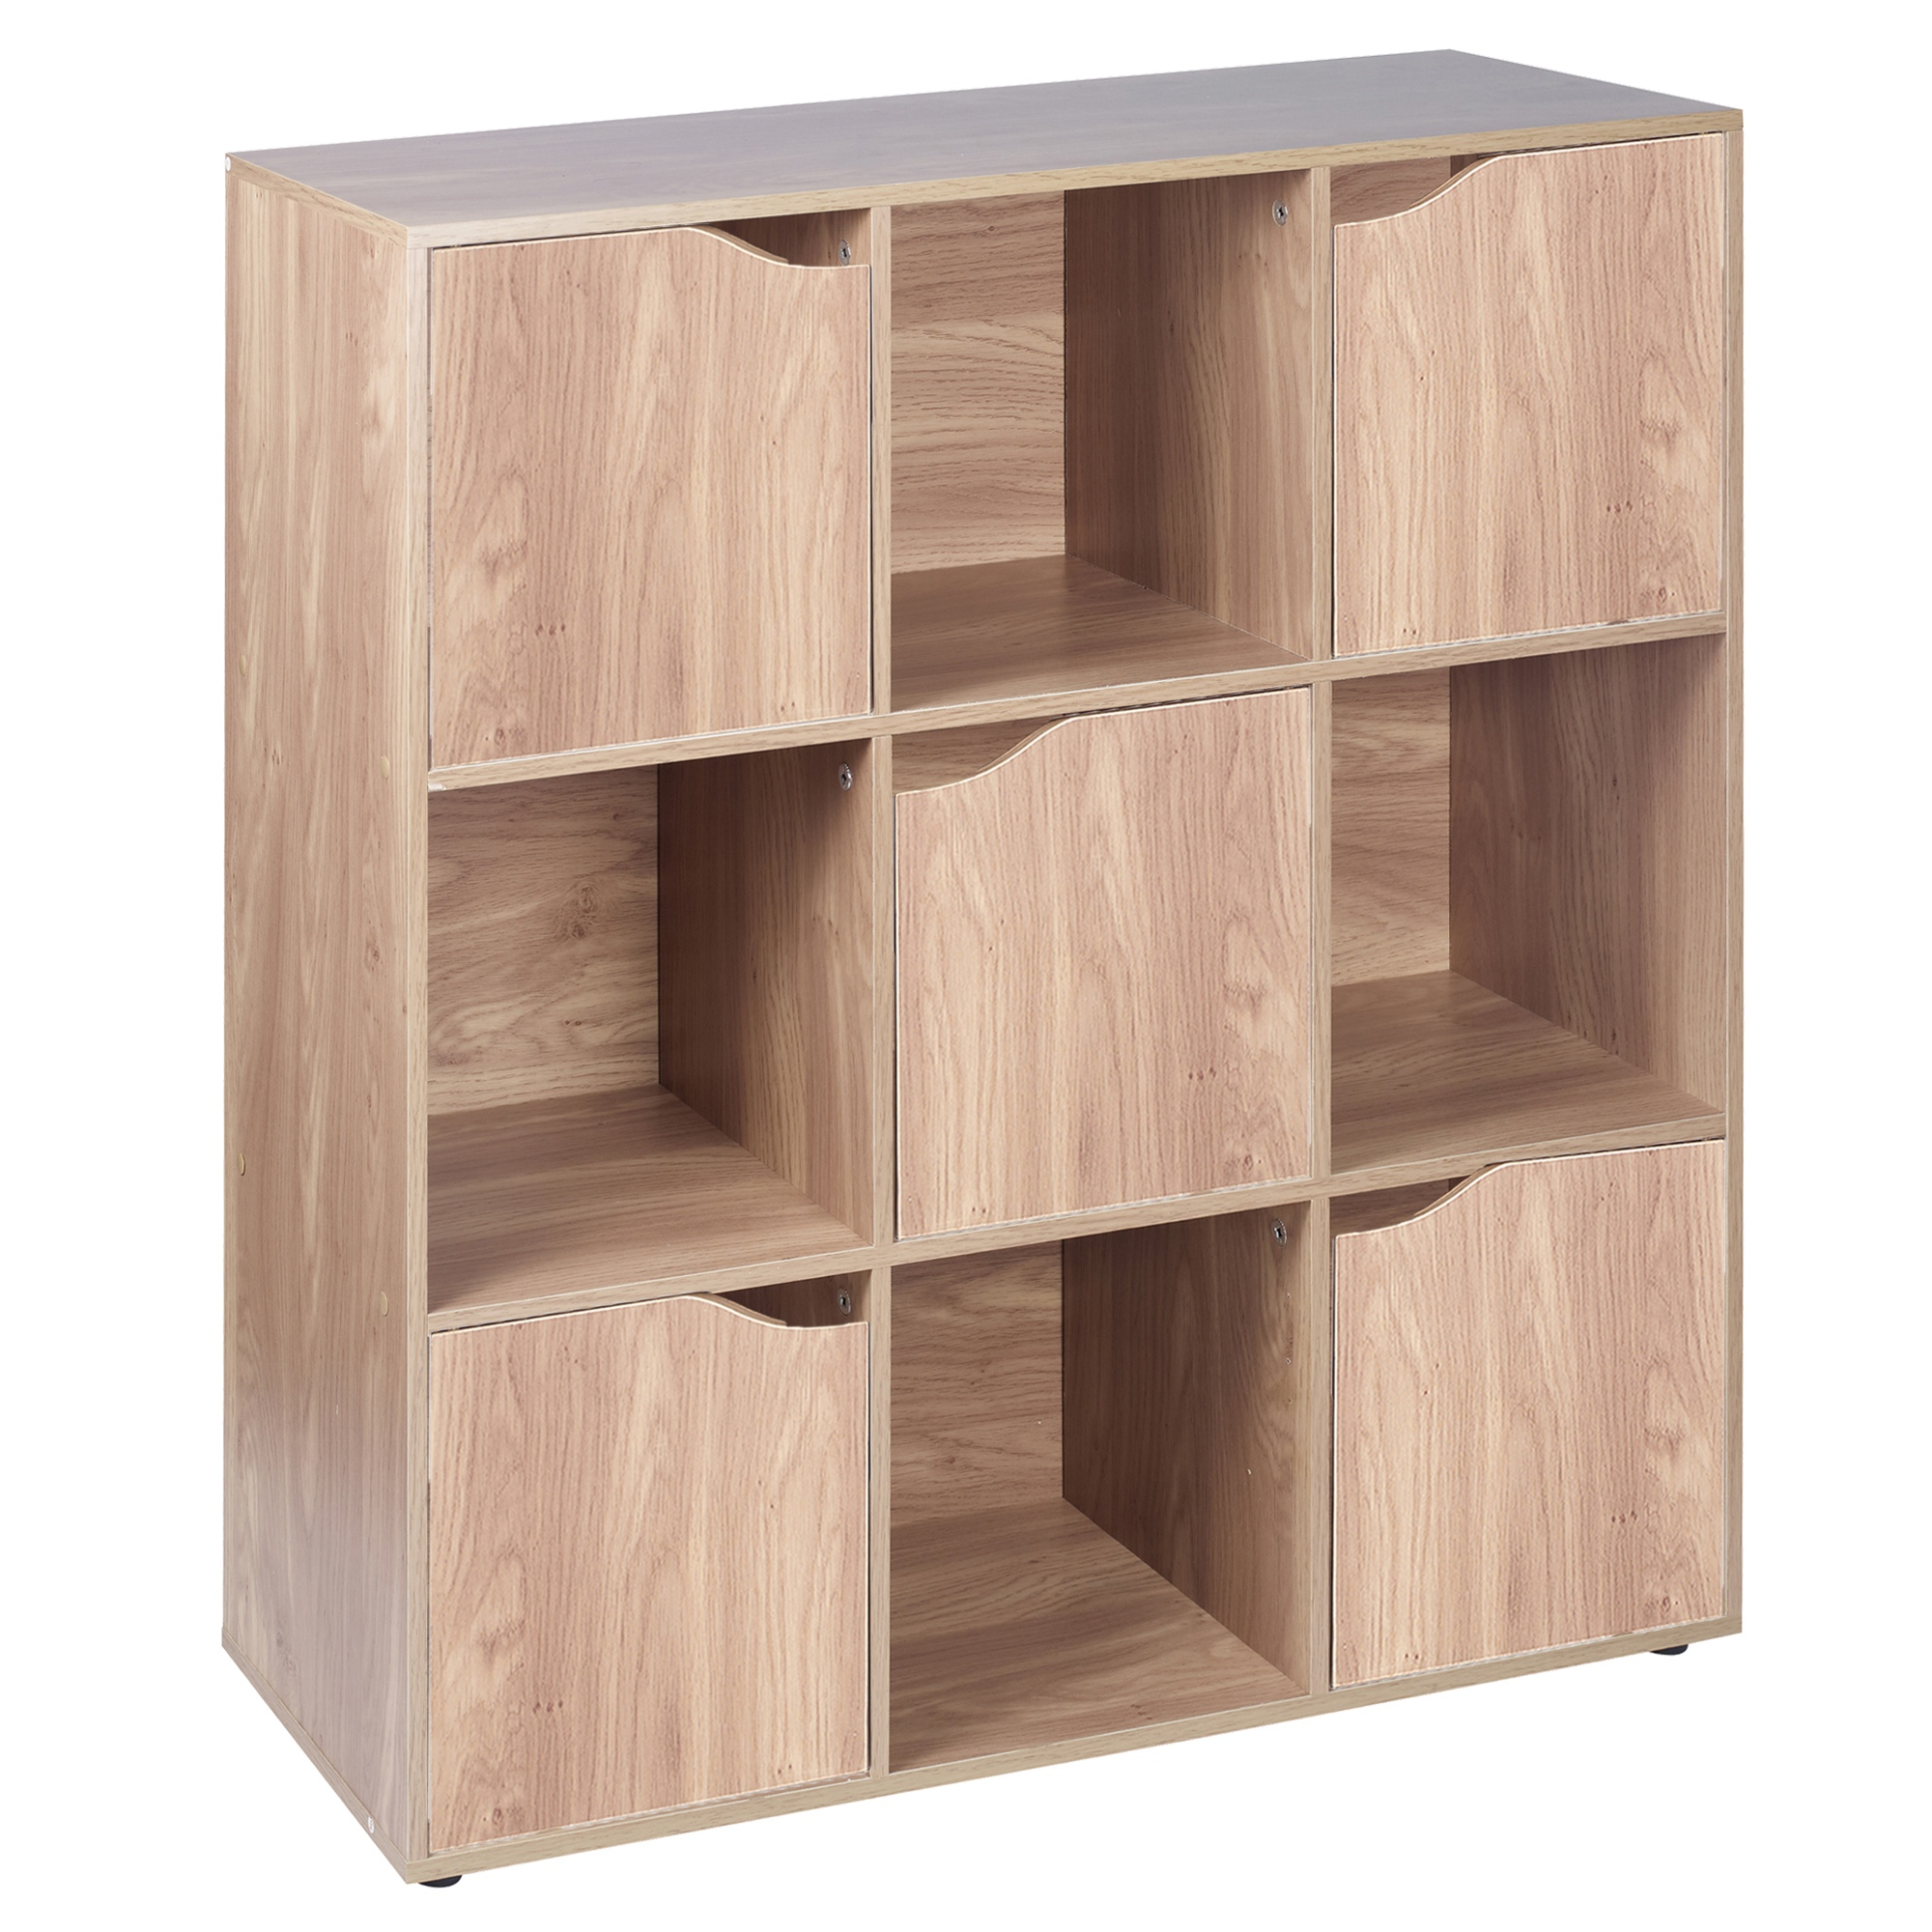 shelving unit with doors 9 cube oak wooden bookcase shelving display modular 26051